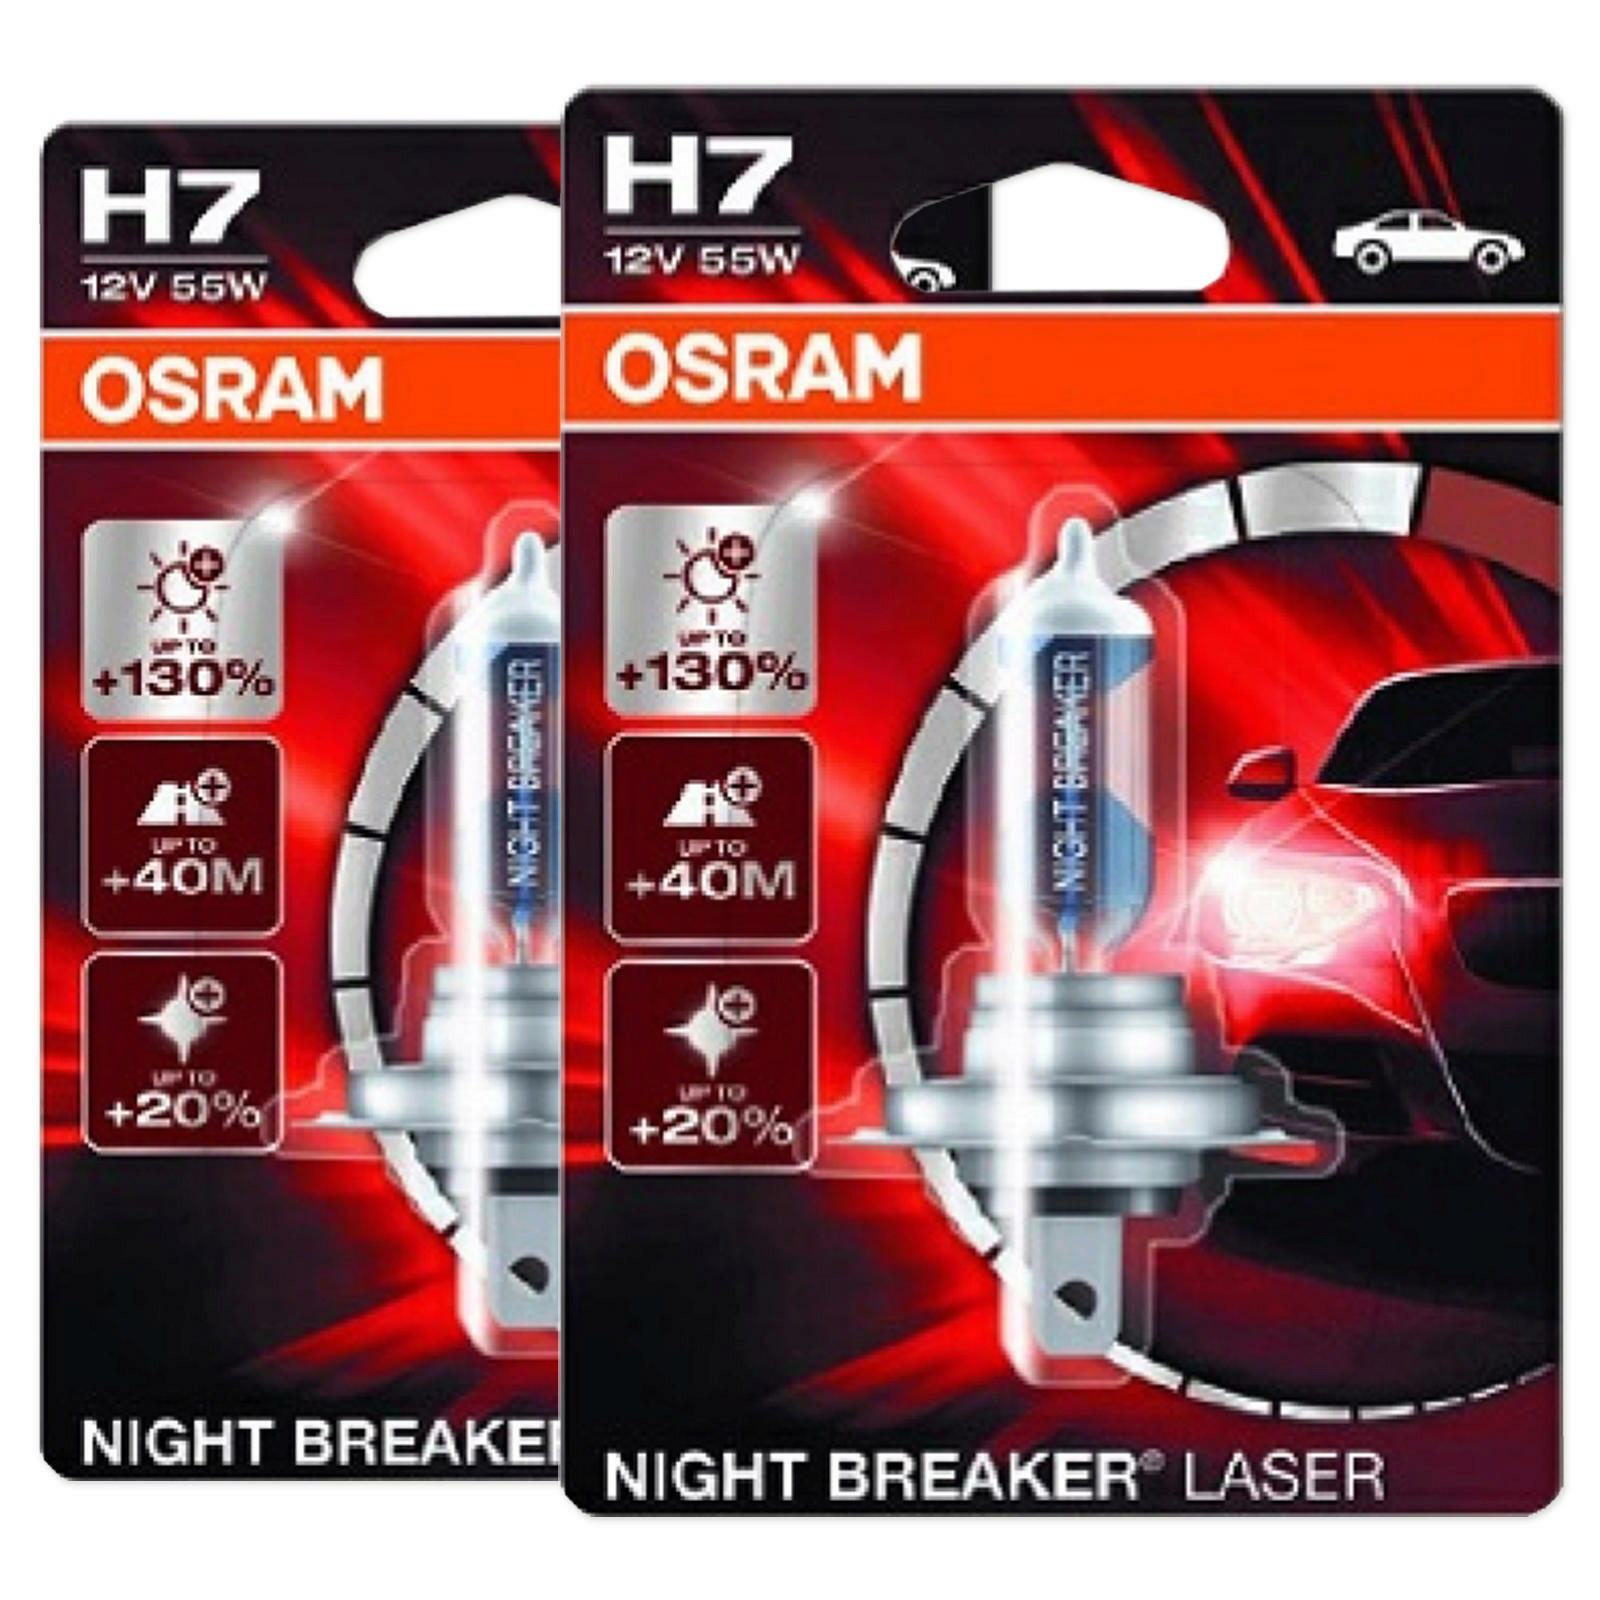 2x OSRAM NIGHT BREAKER LASER H7